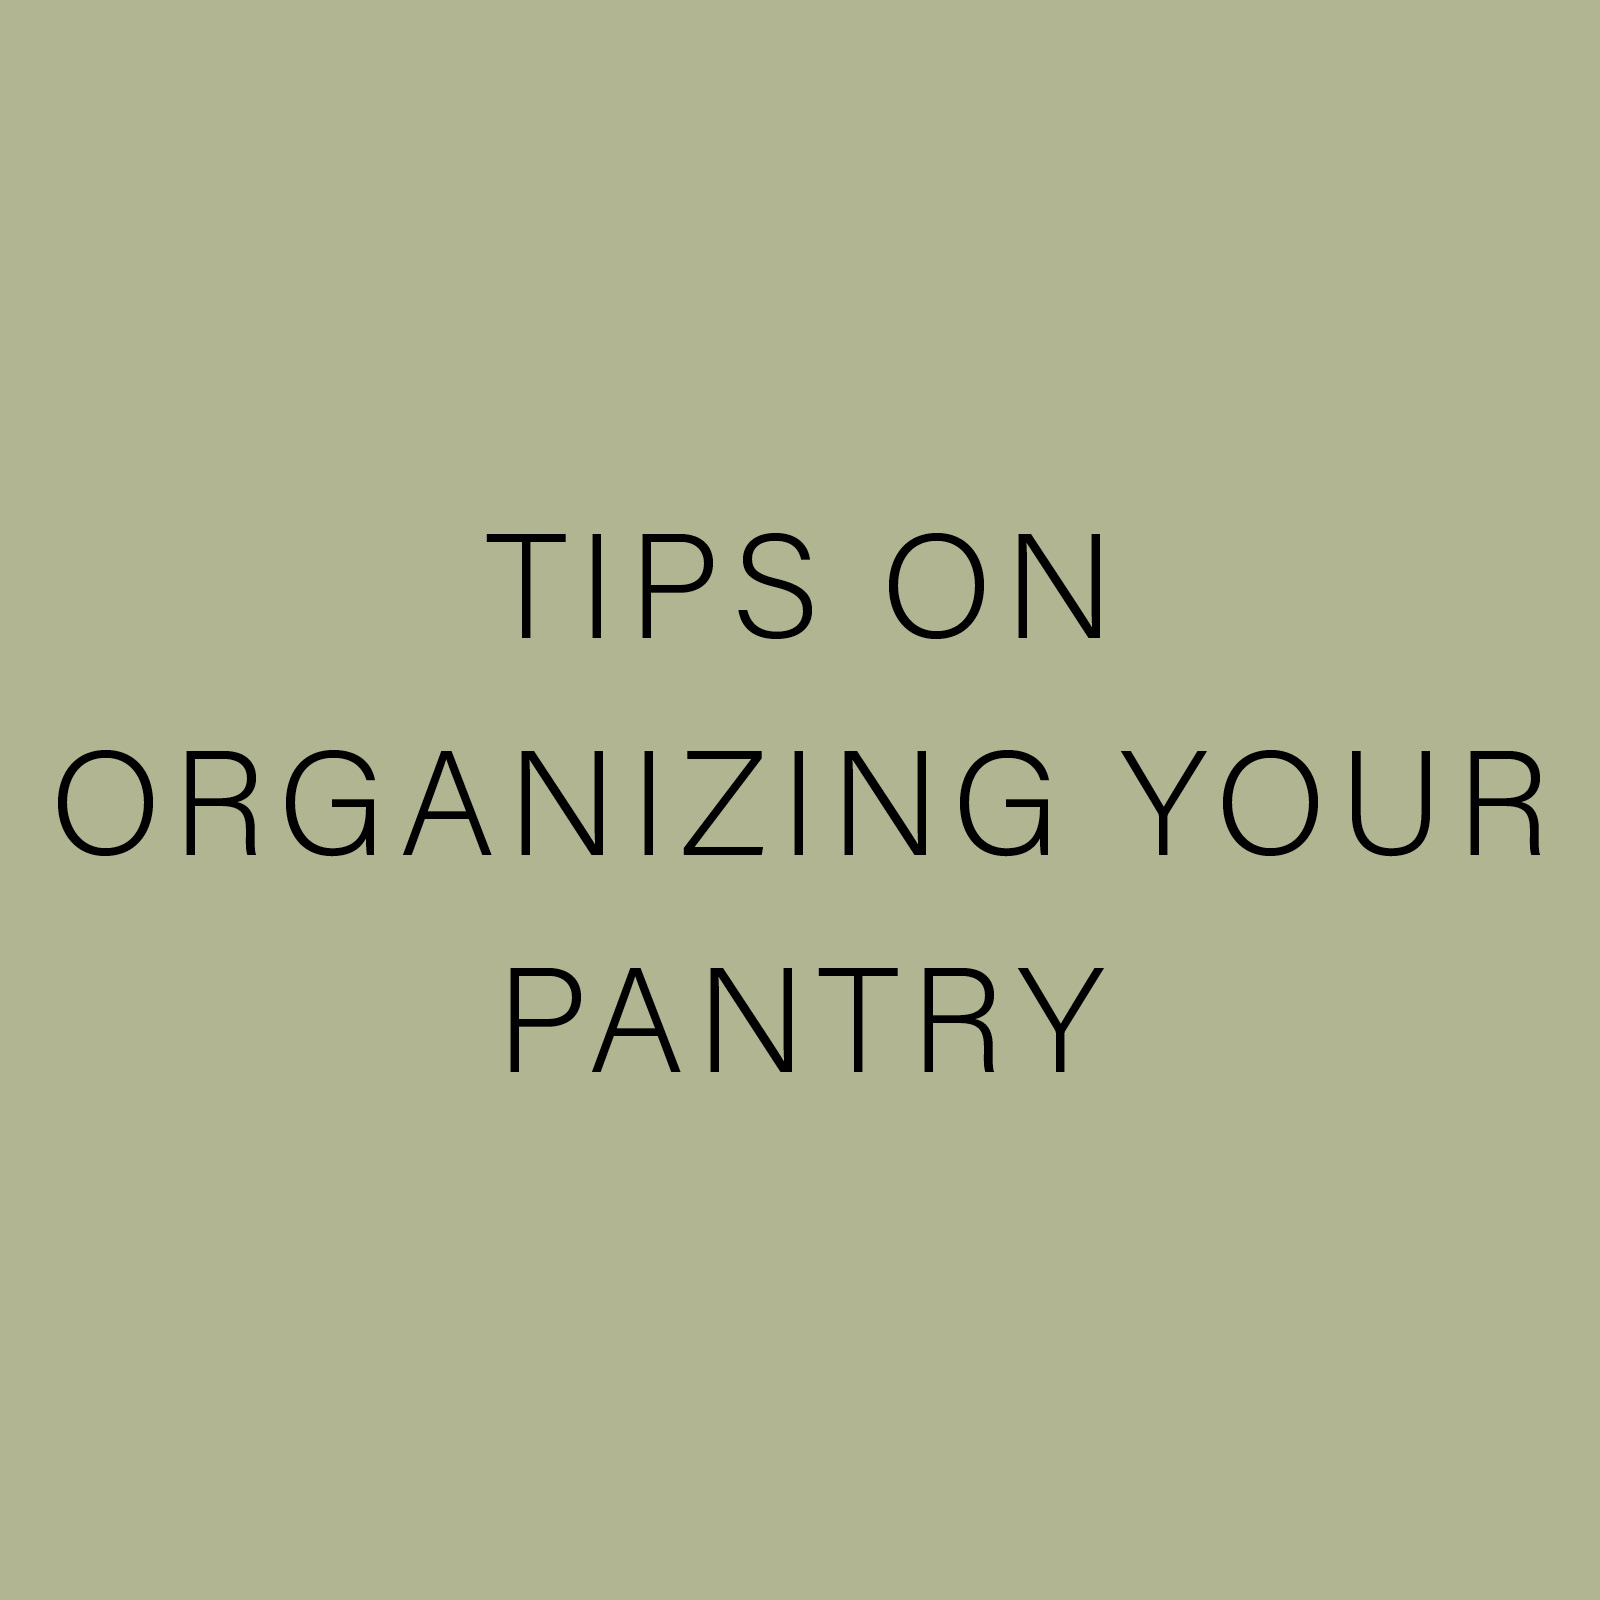 TIPS ON ORGANIZING YOUR PANTRY.jpg